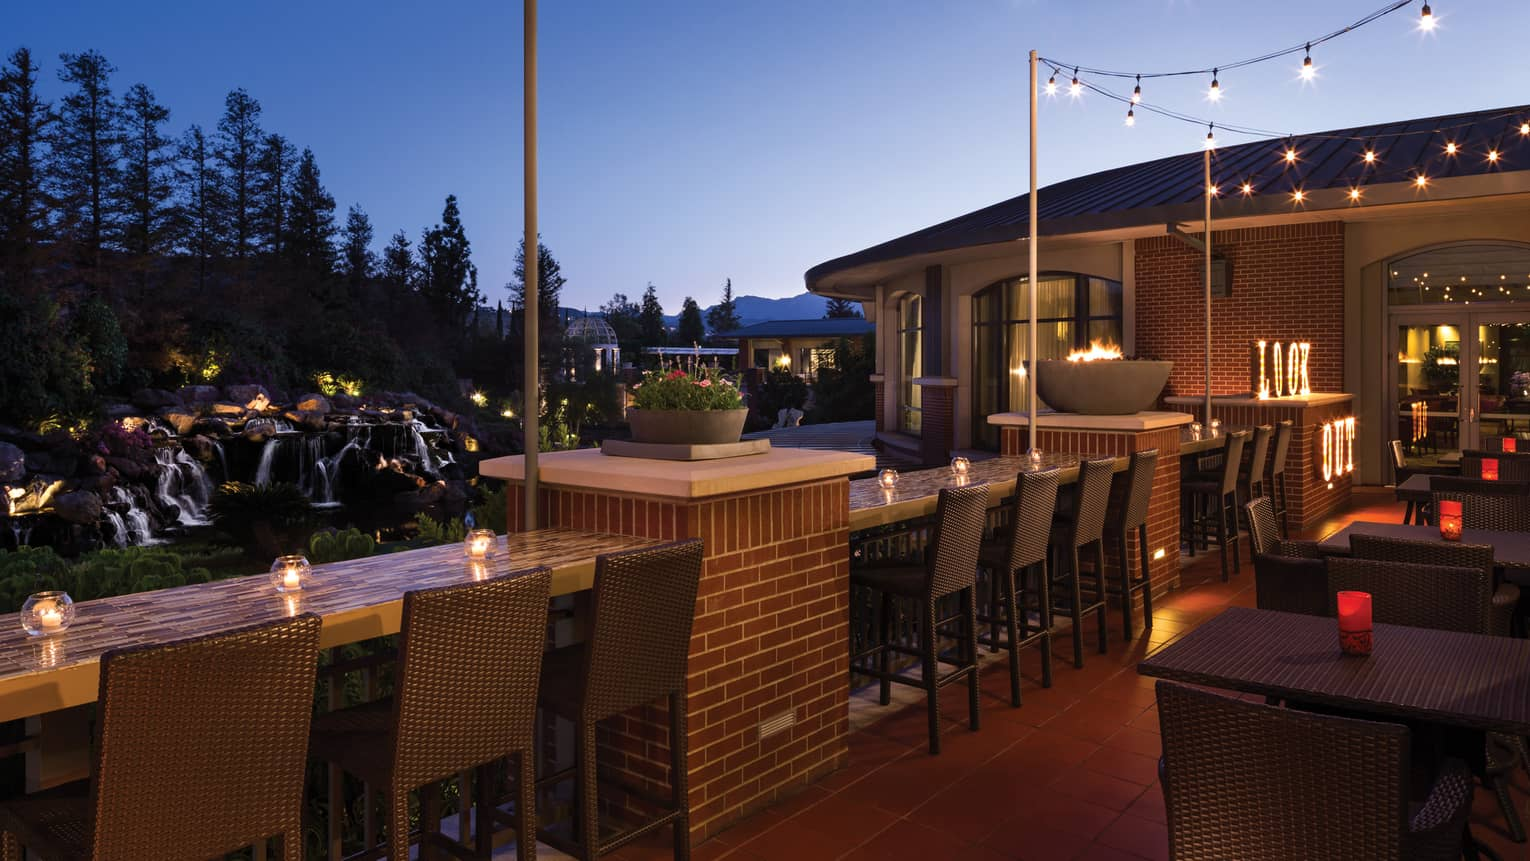 Westlake Village Restaurants & Bars | Four Seasons Hotel